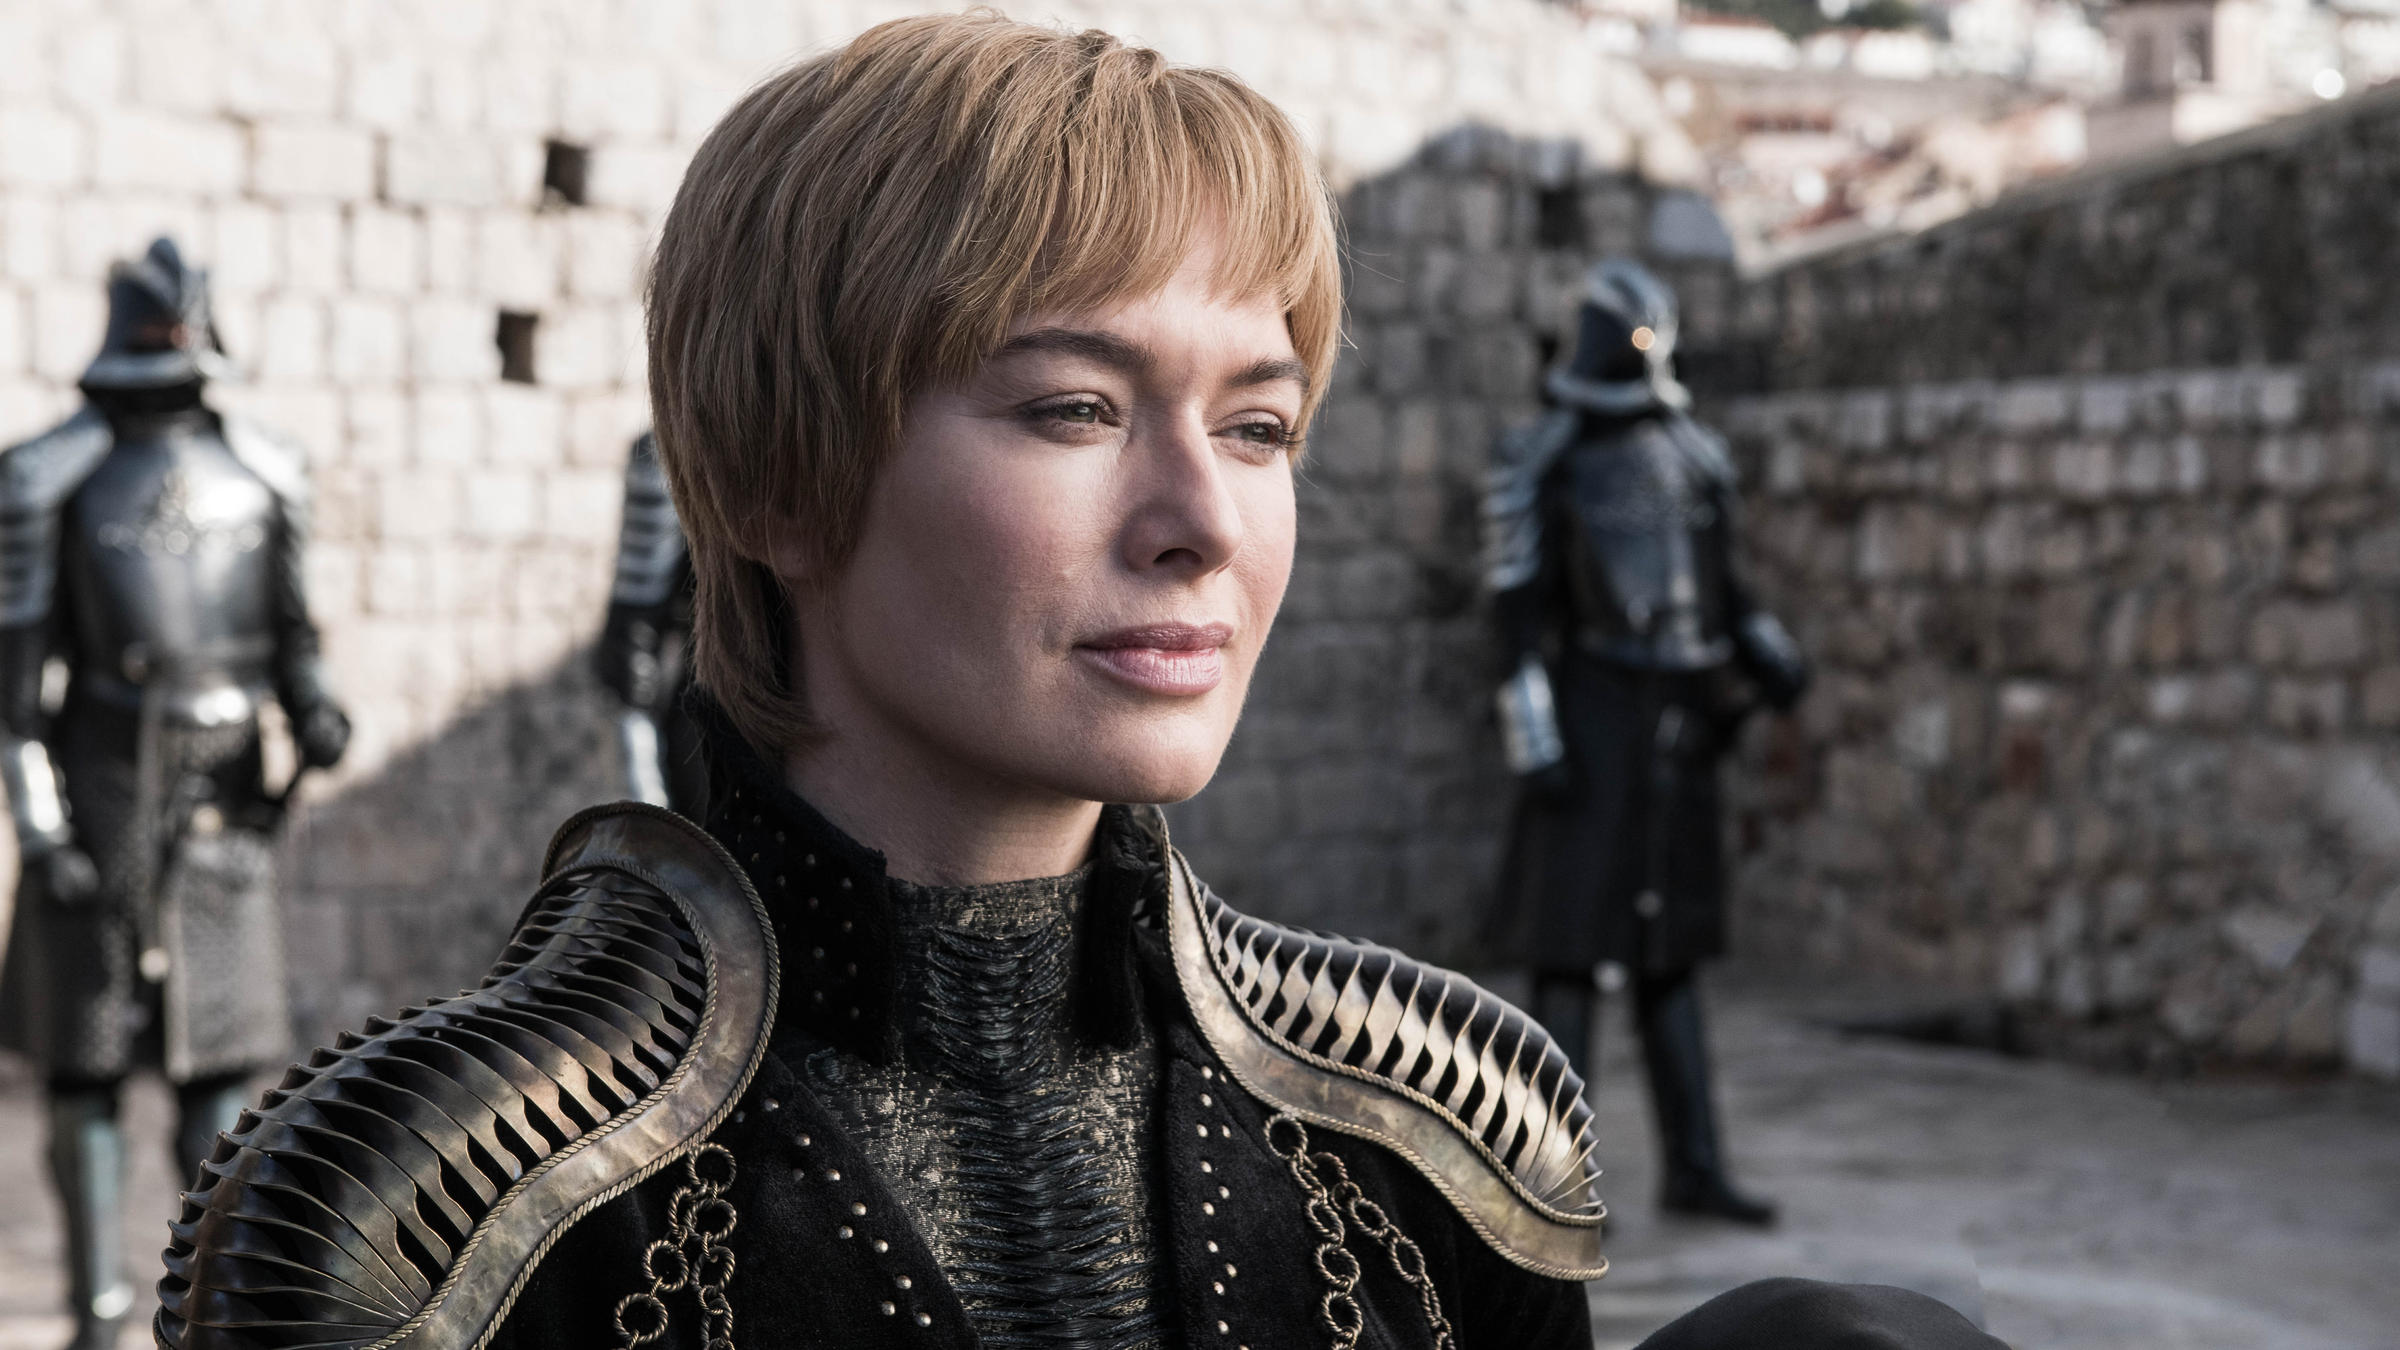 Queen Cersei (Lena Headey) smiling that smile of hers on Game of Thrones. Shoulder pads courtesy Julia Sugarbaker.